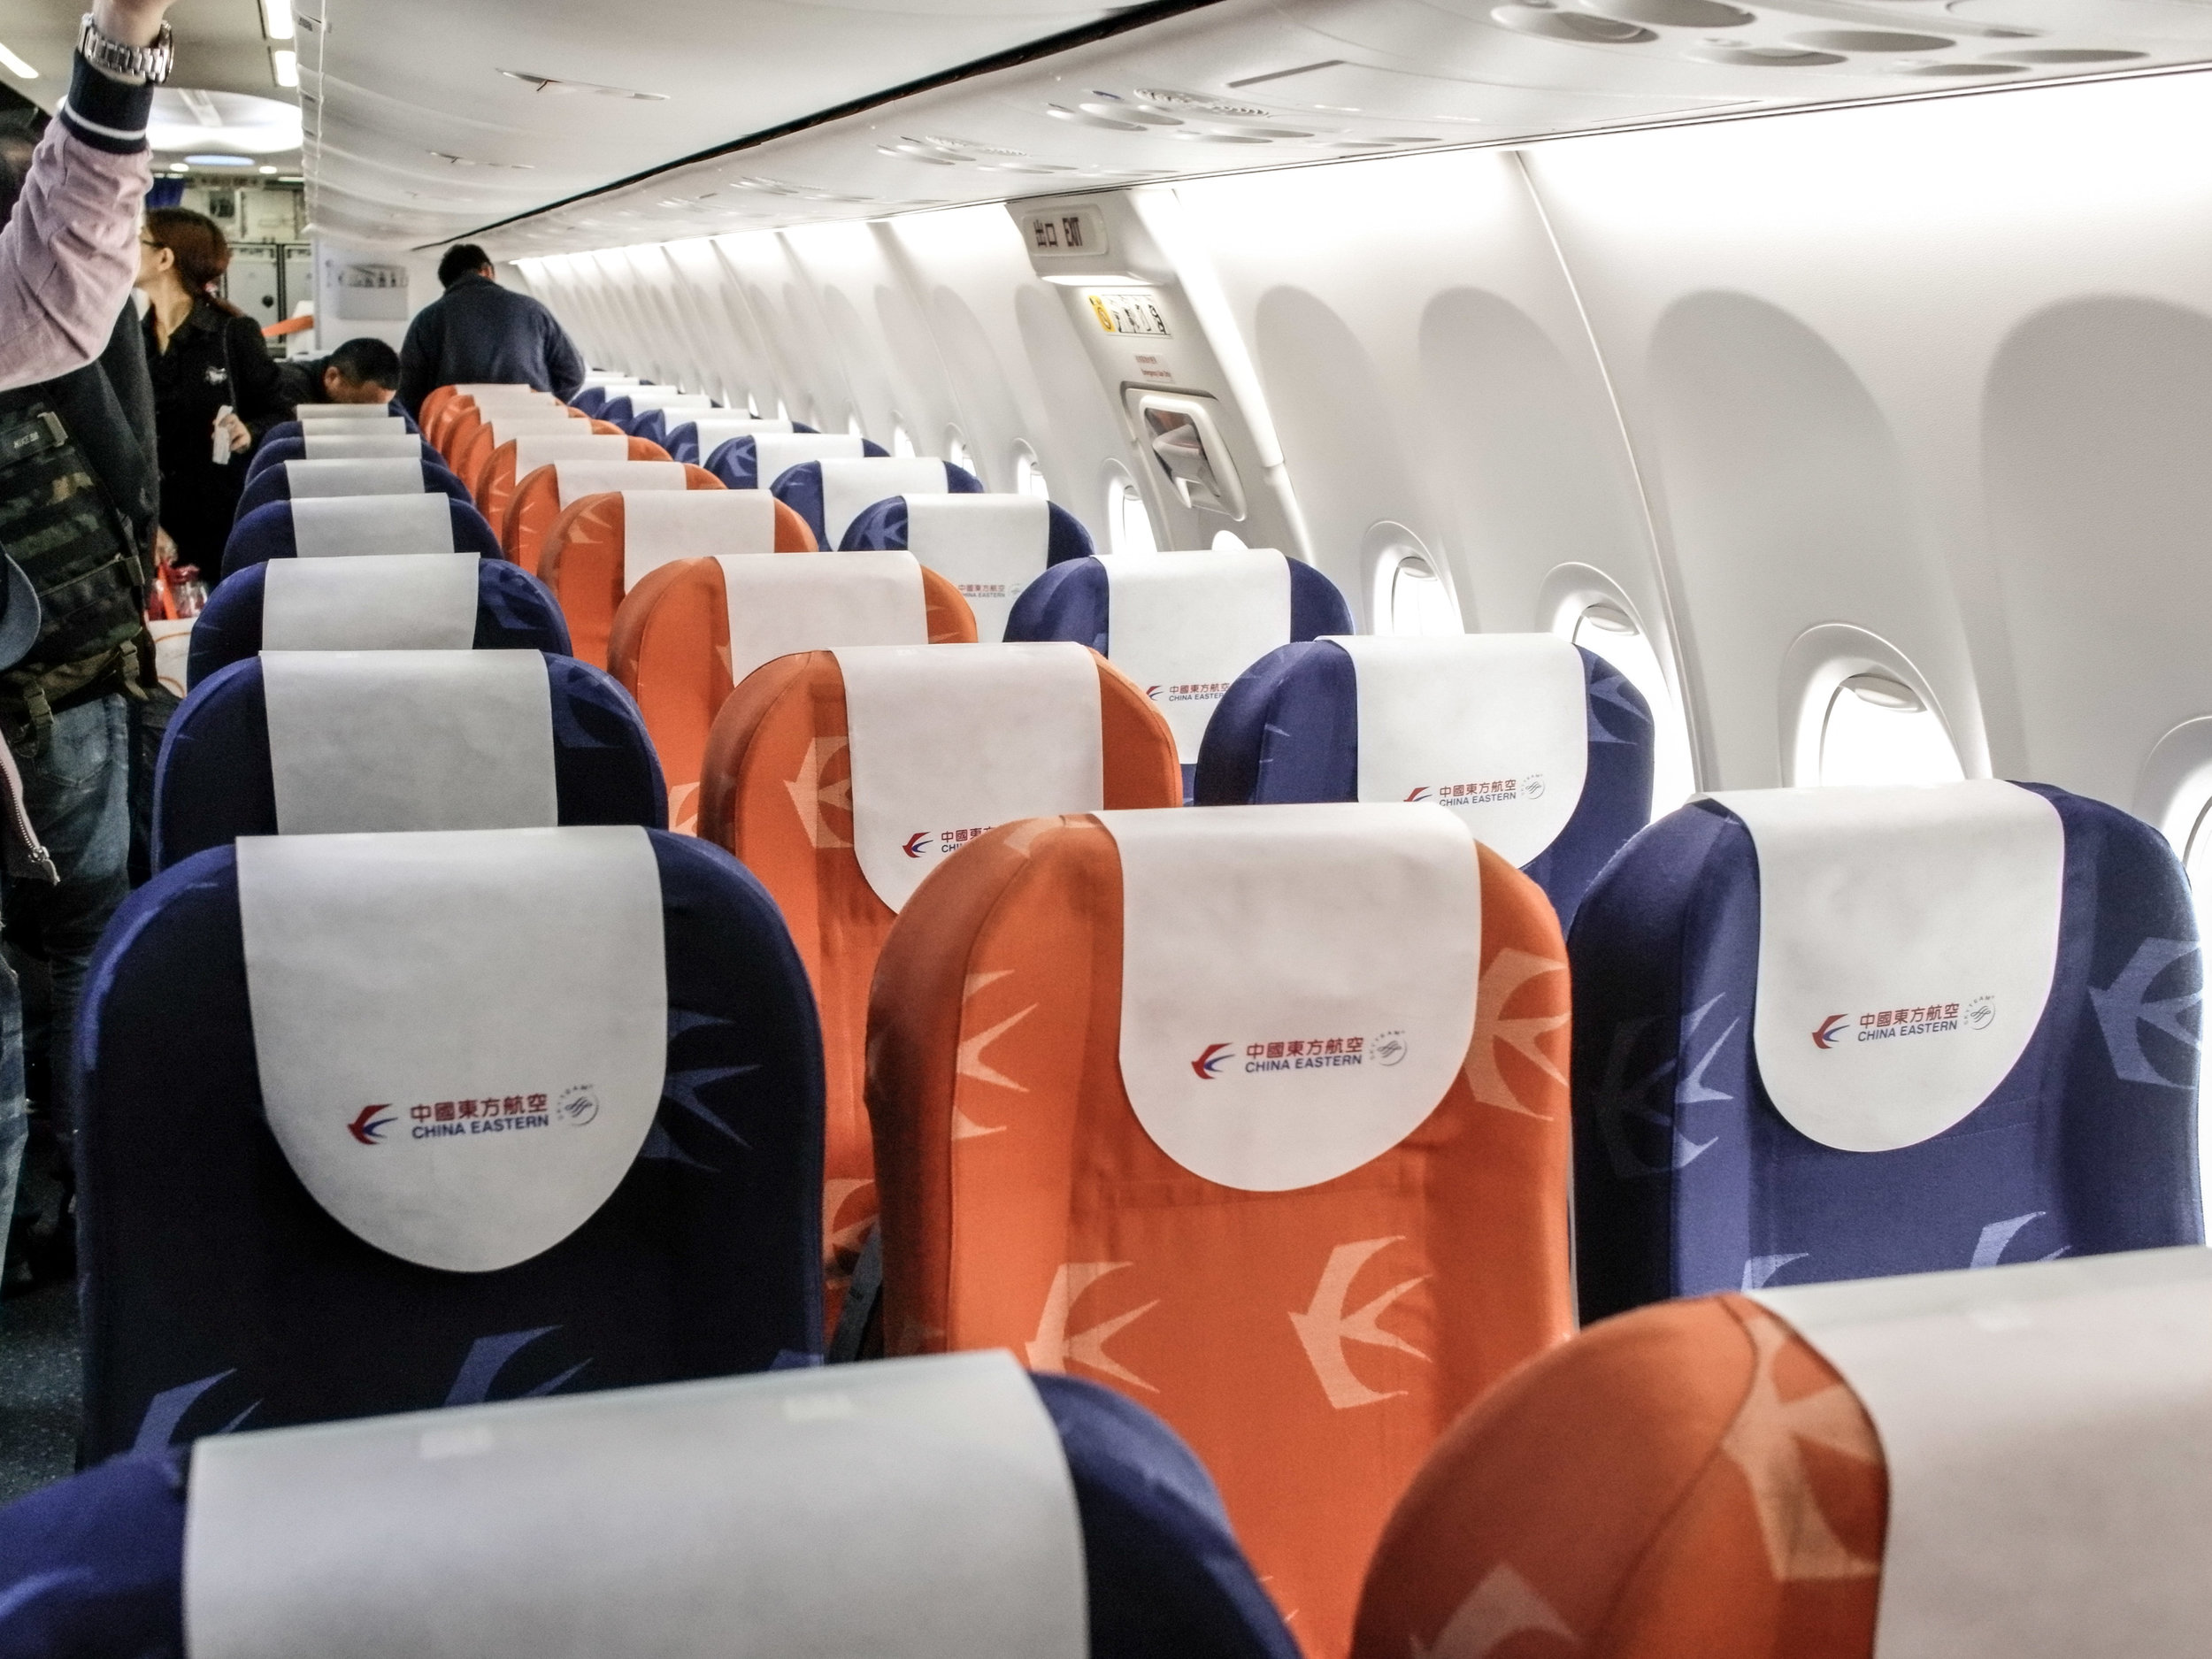 China Eastern Boeing 737 - economy class